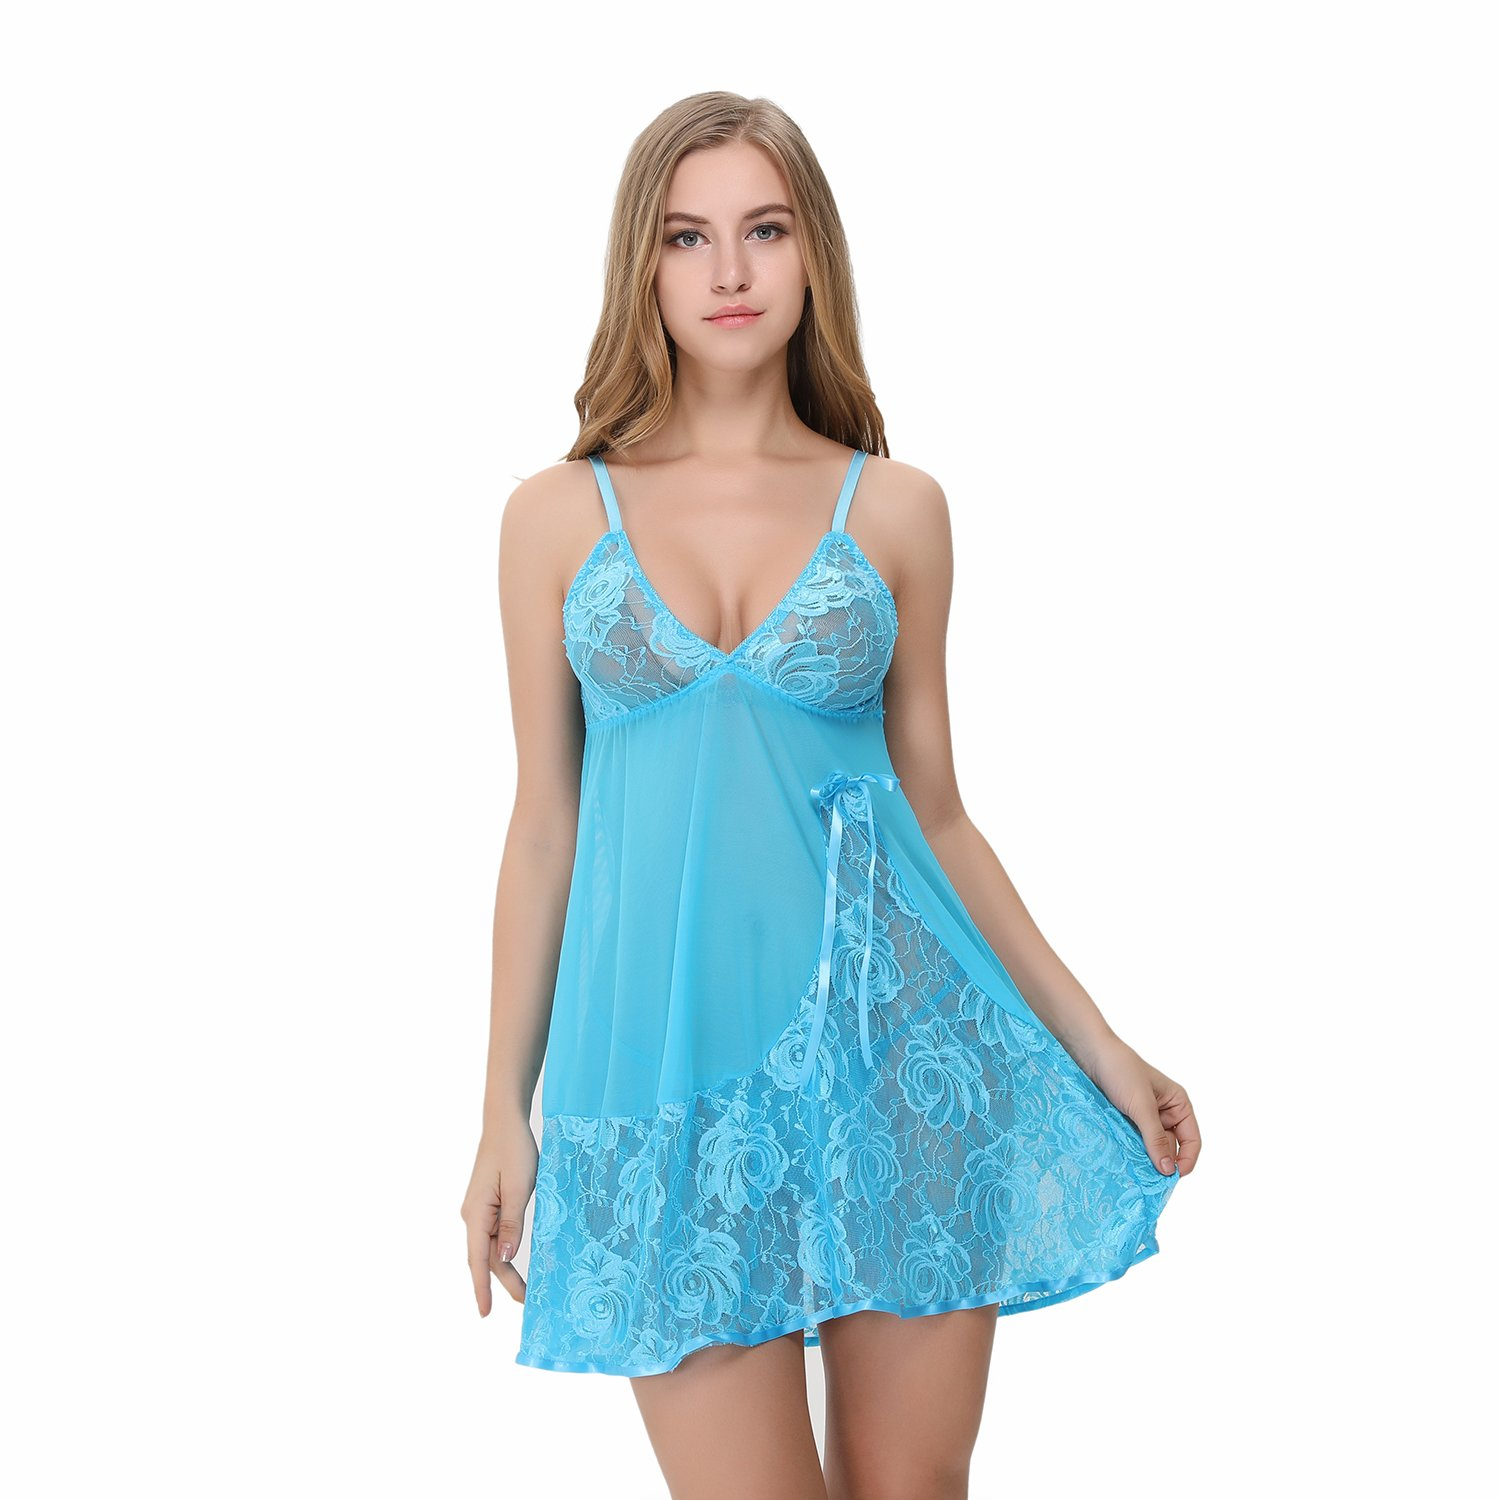 Advoult Women Babydolls Sexy Lingerie Nighty Lace Sleepwear Mesh Chemise Outfits by Advoult (Image #2)